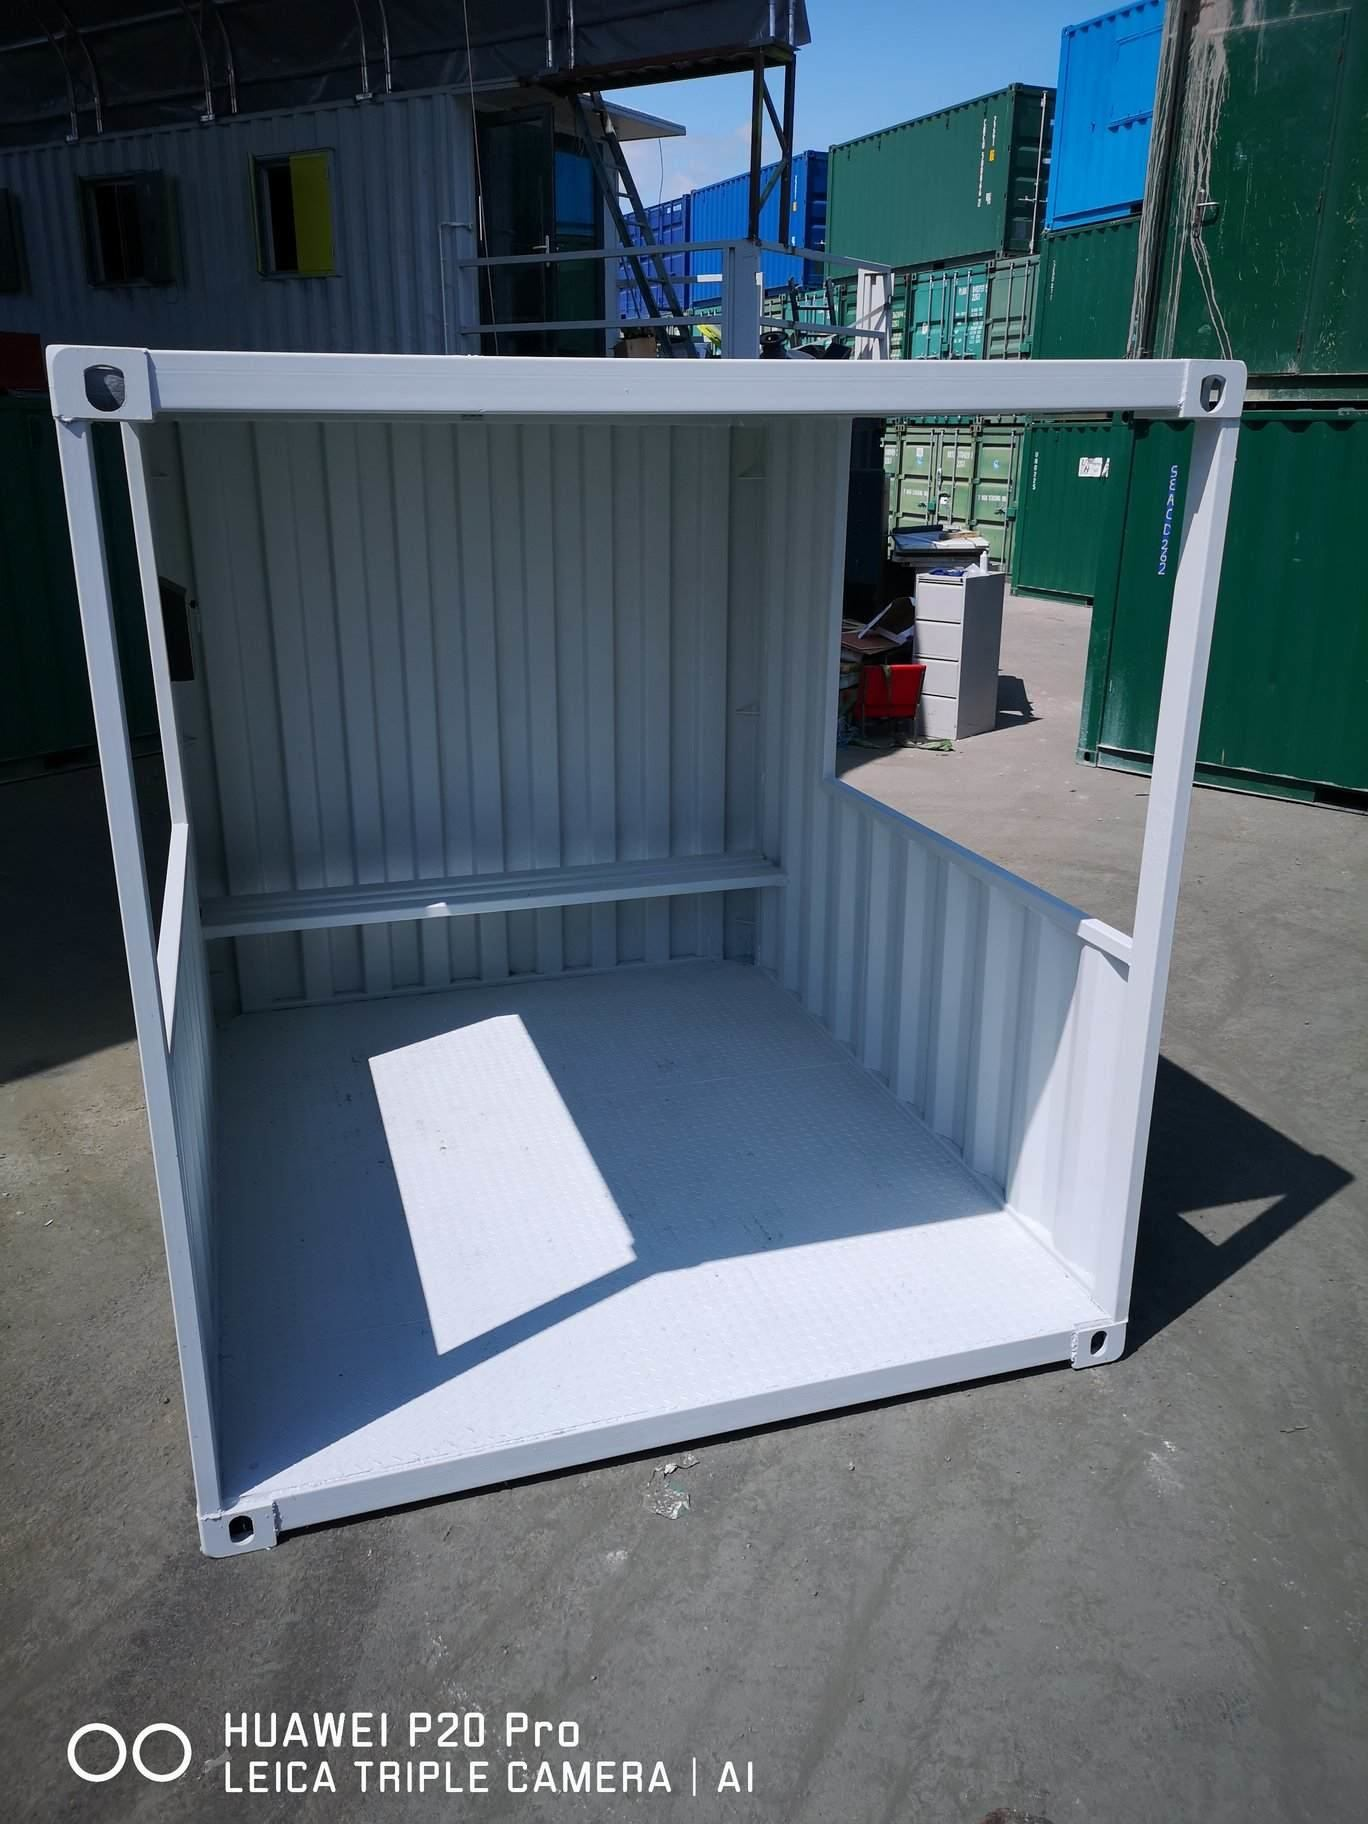 Grey portable smoking shelter in storage container yard